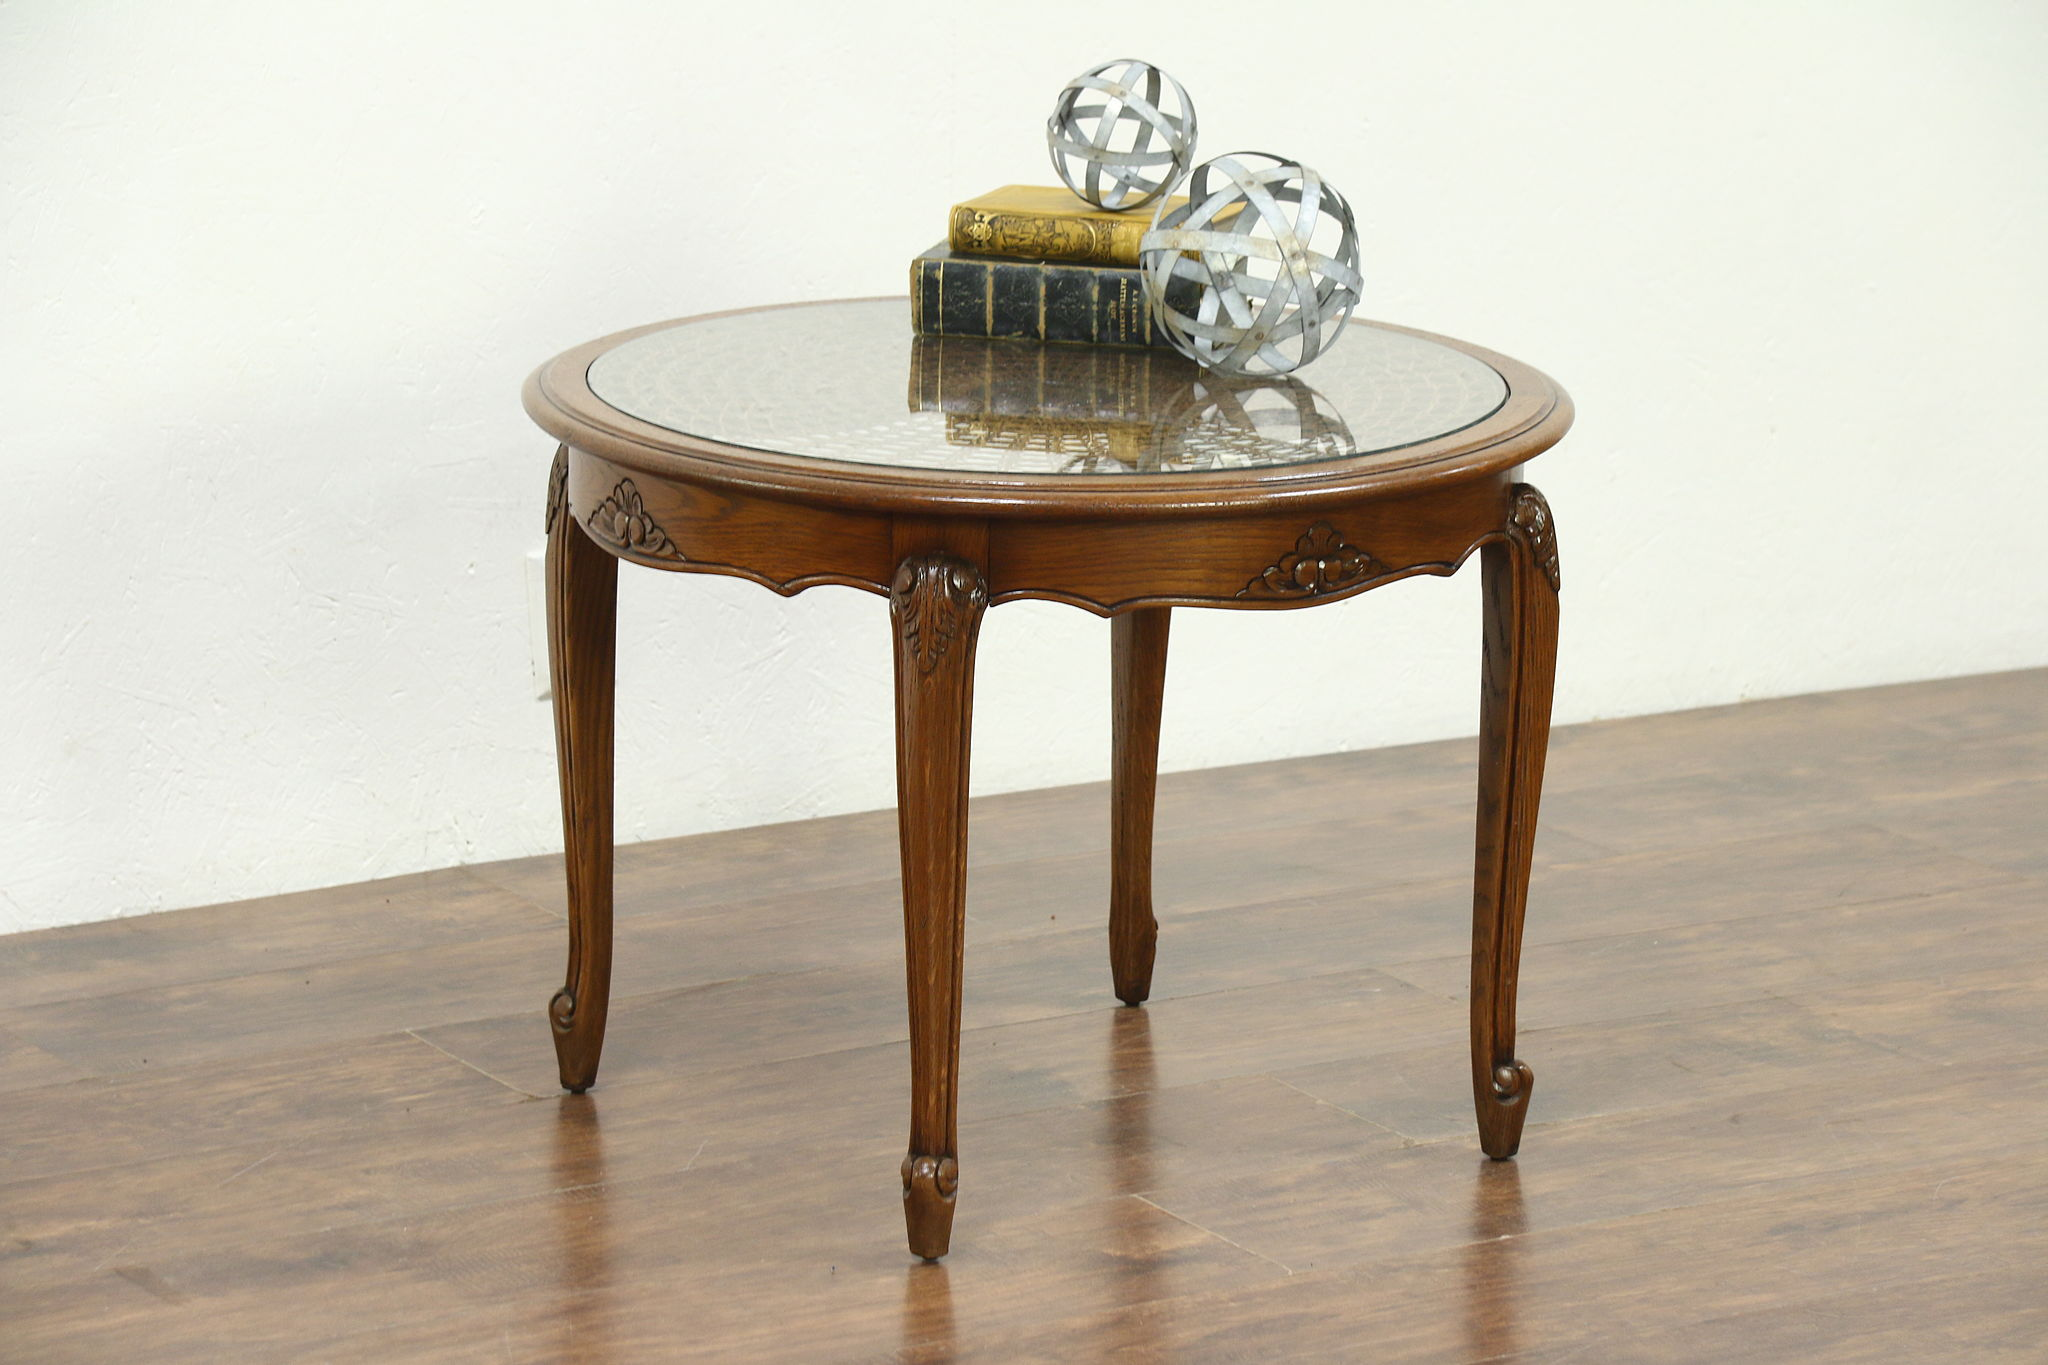 Merveilleux Oak Carved Round Vintage Coffee Table, Cane U0026 Glass Top, ...